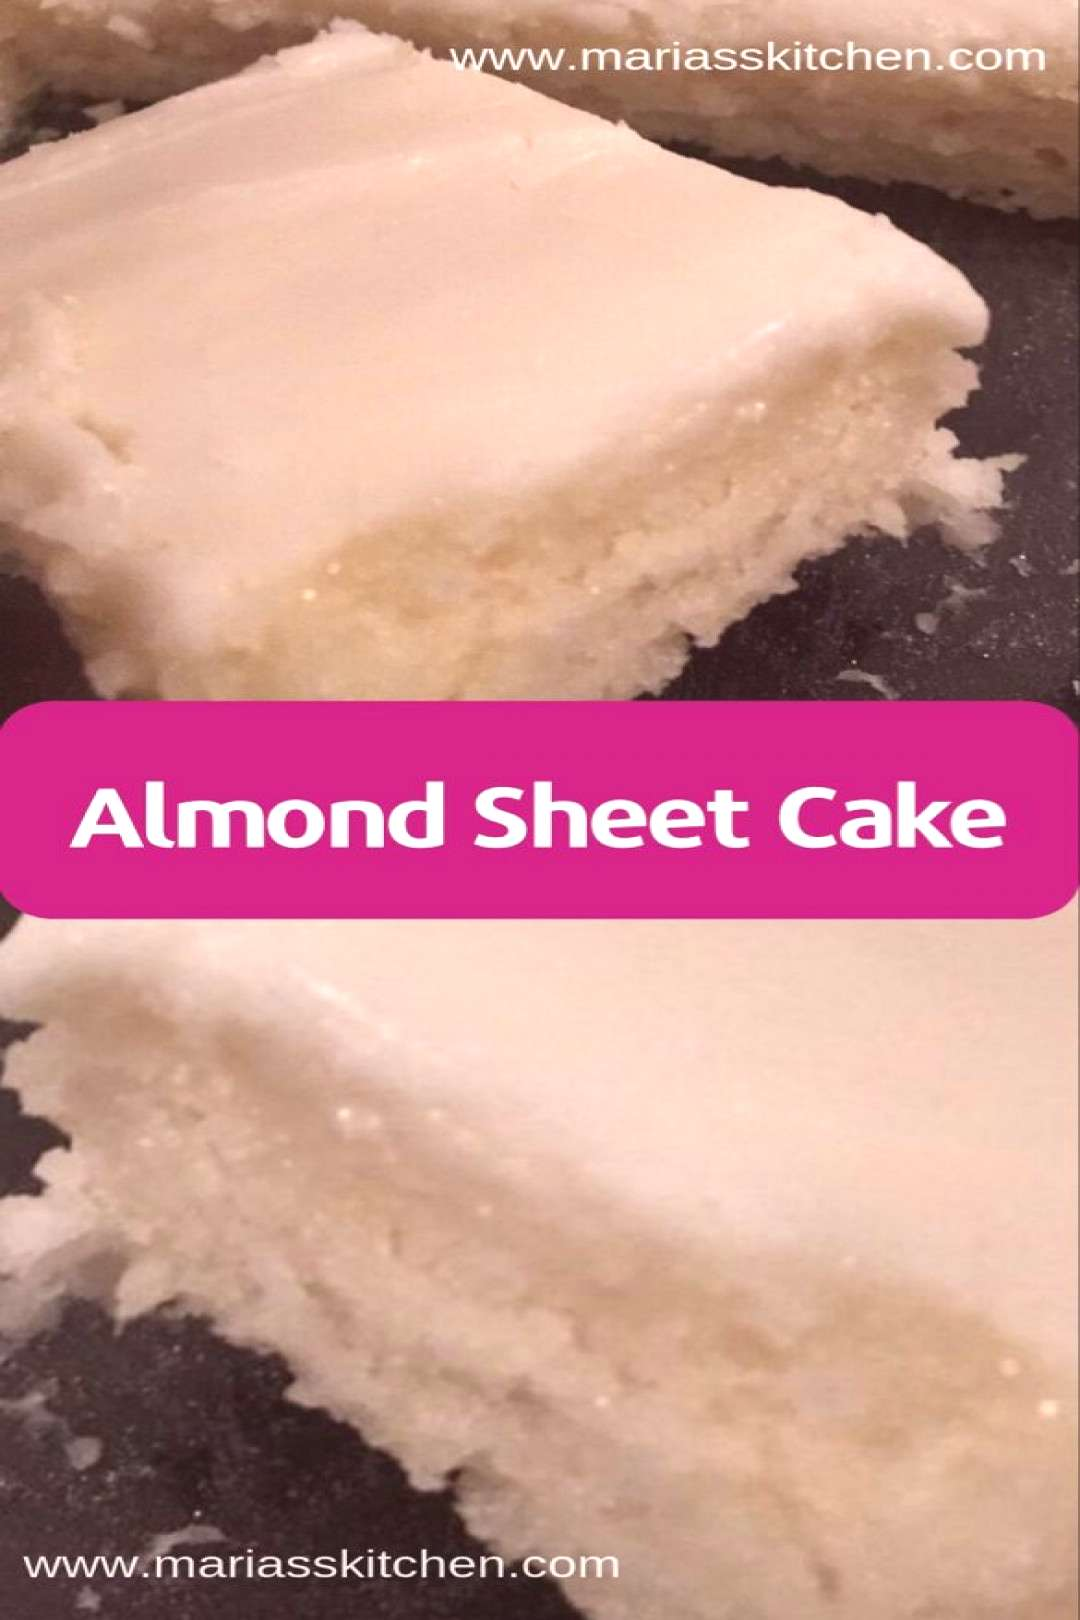 Almond Sheet Cake Recipe - Maria's Kitchen